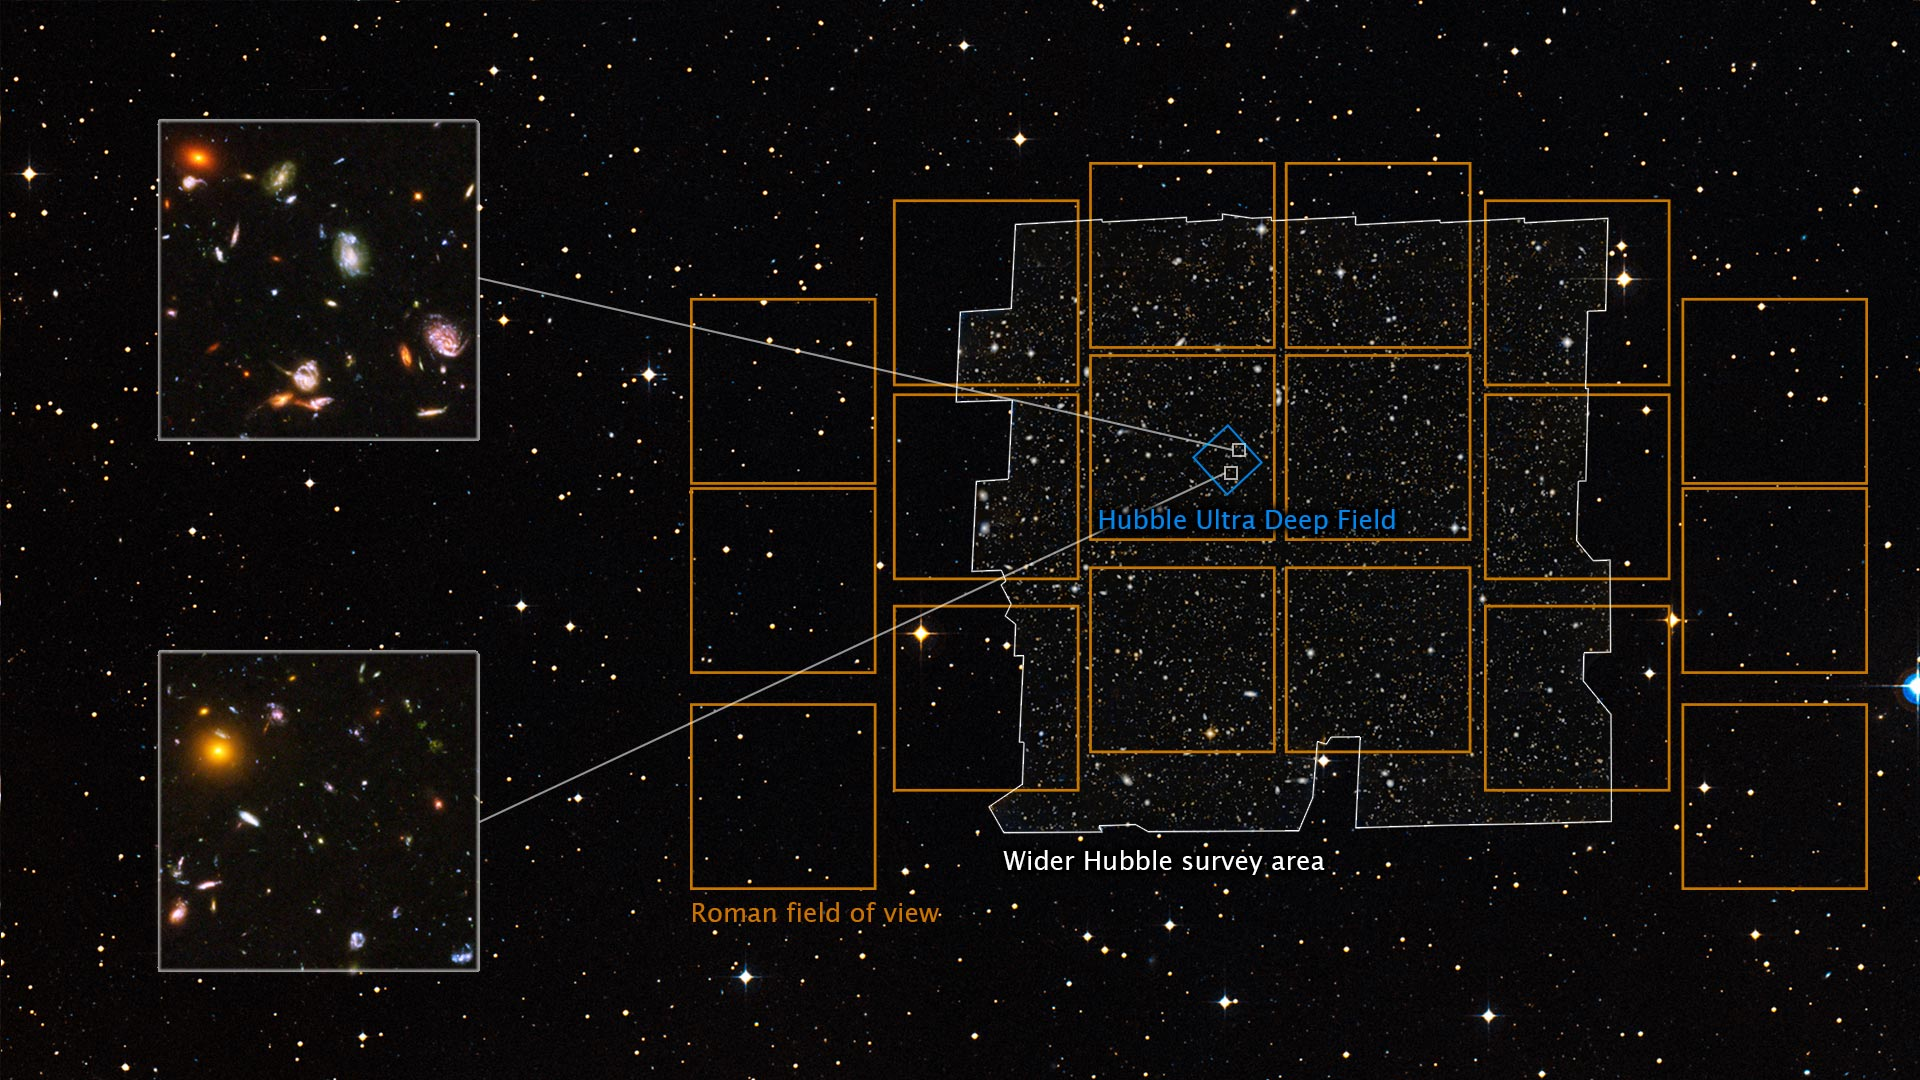 NASA's upcoming Roman space telescope could make Image 100 Hubble Ultra Deep Fields Simultaneous